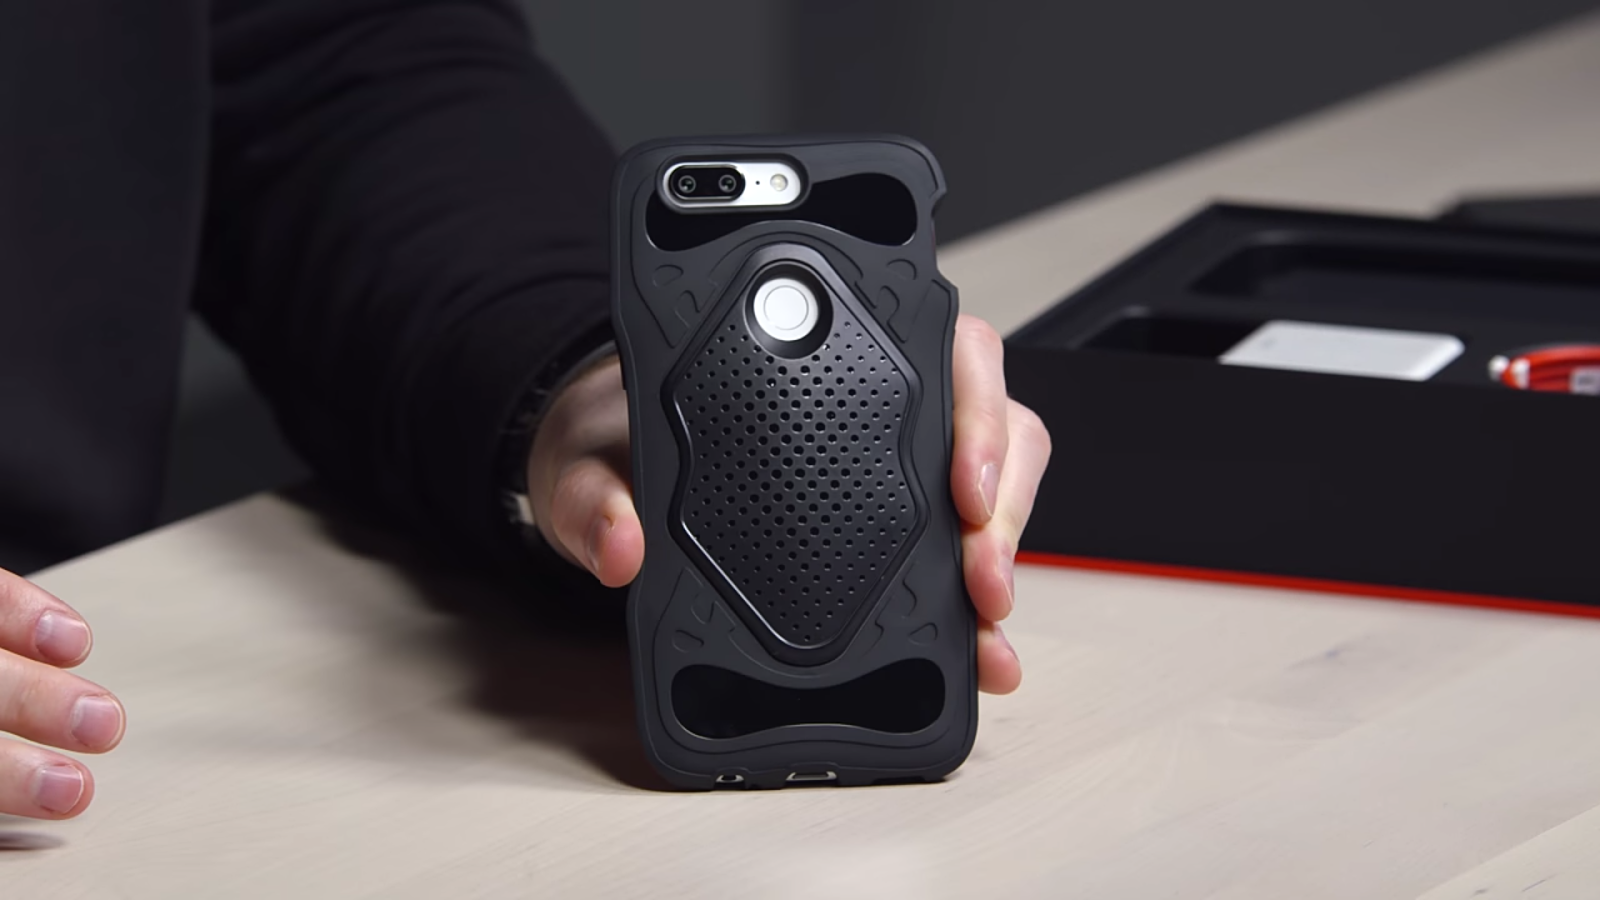 the protective casing